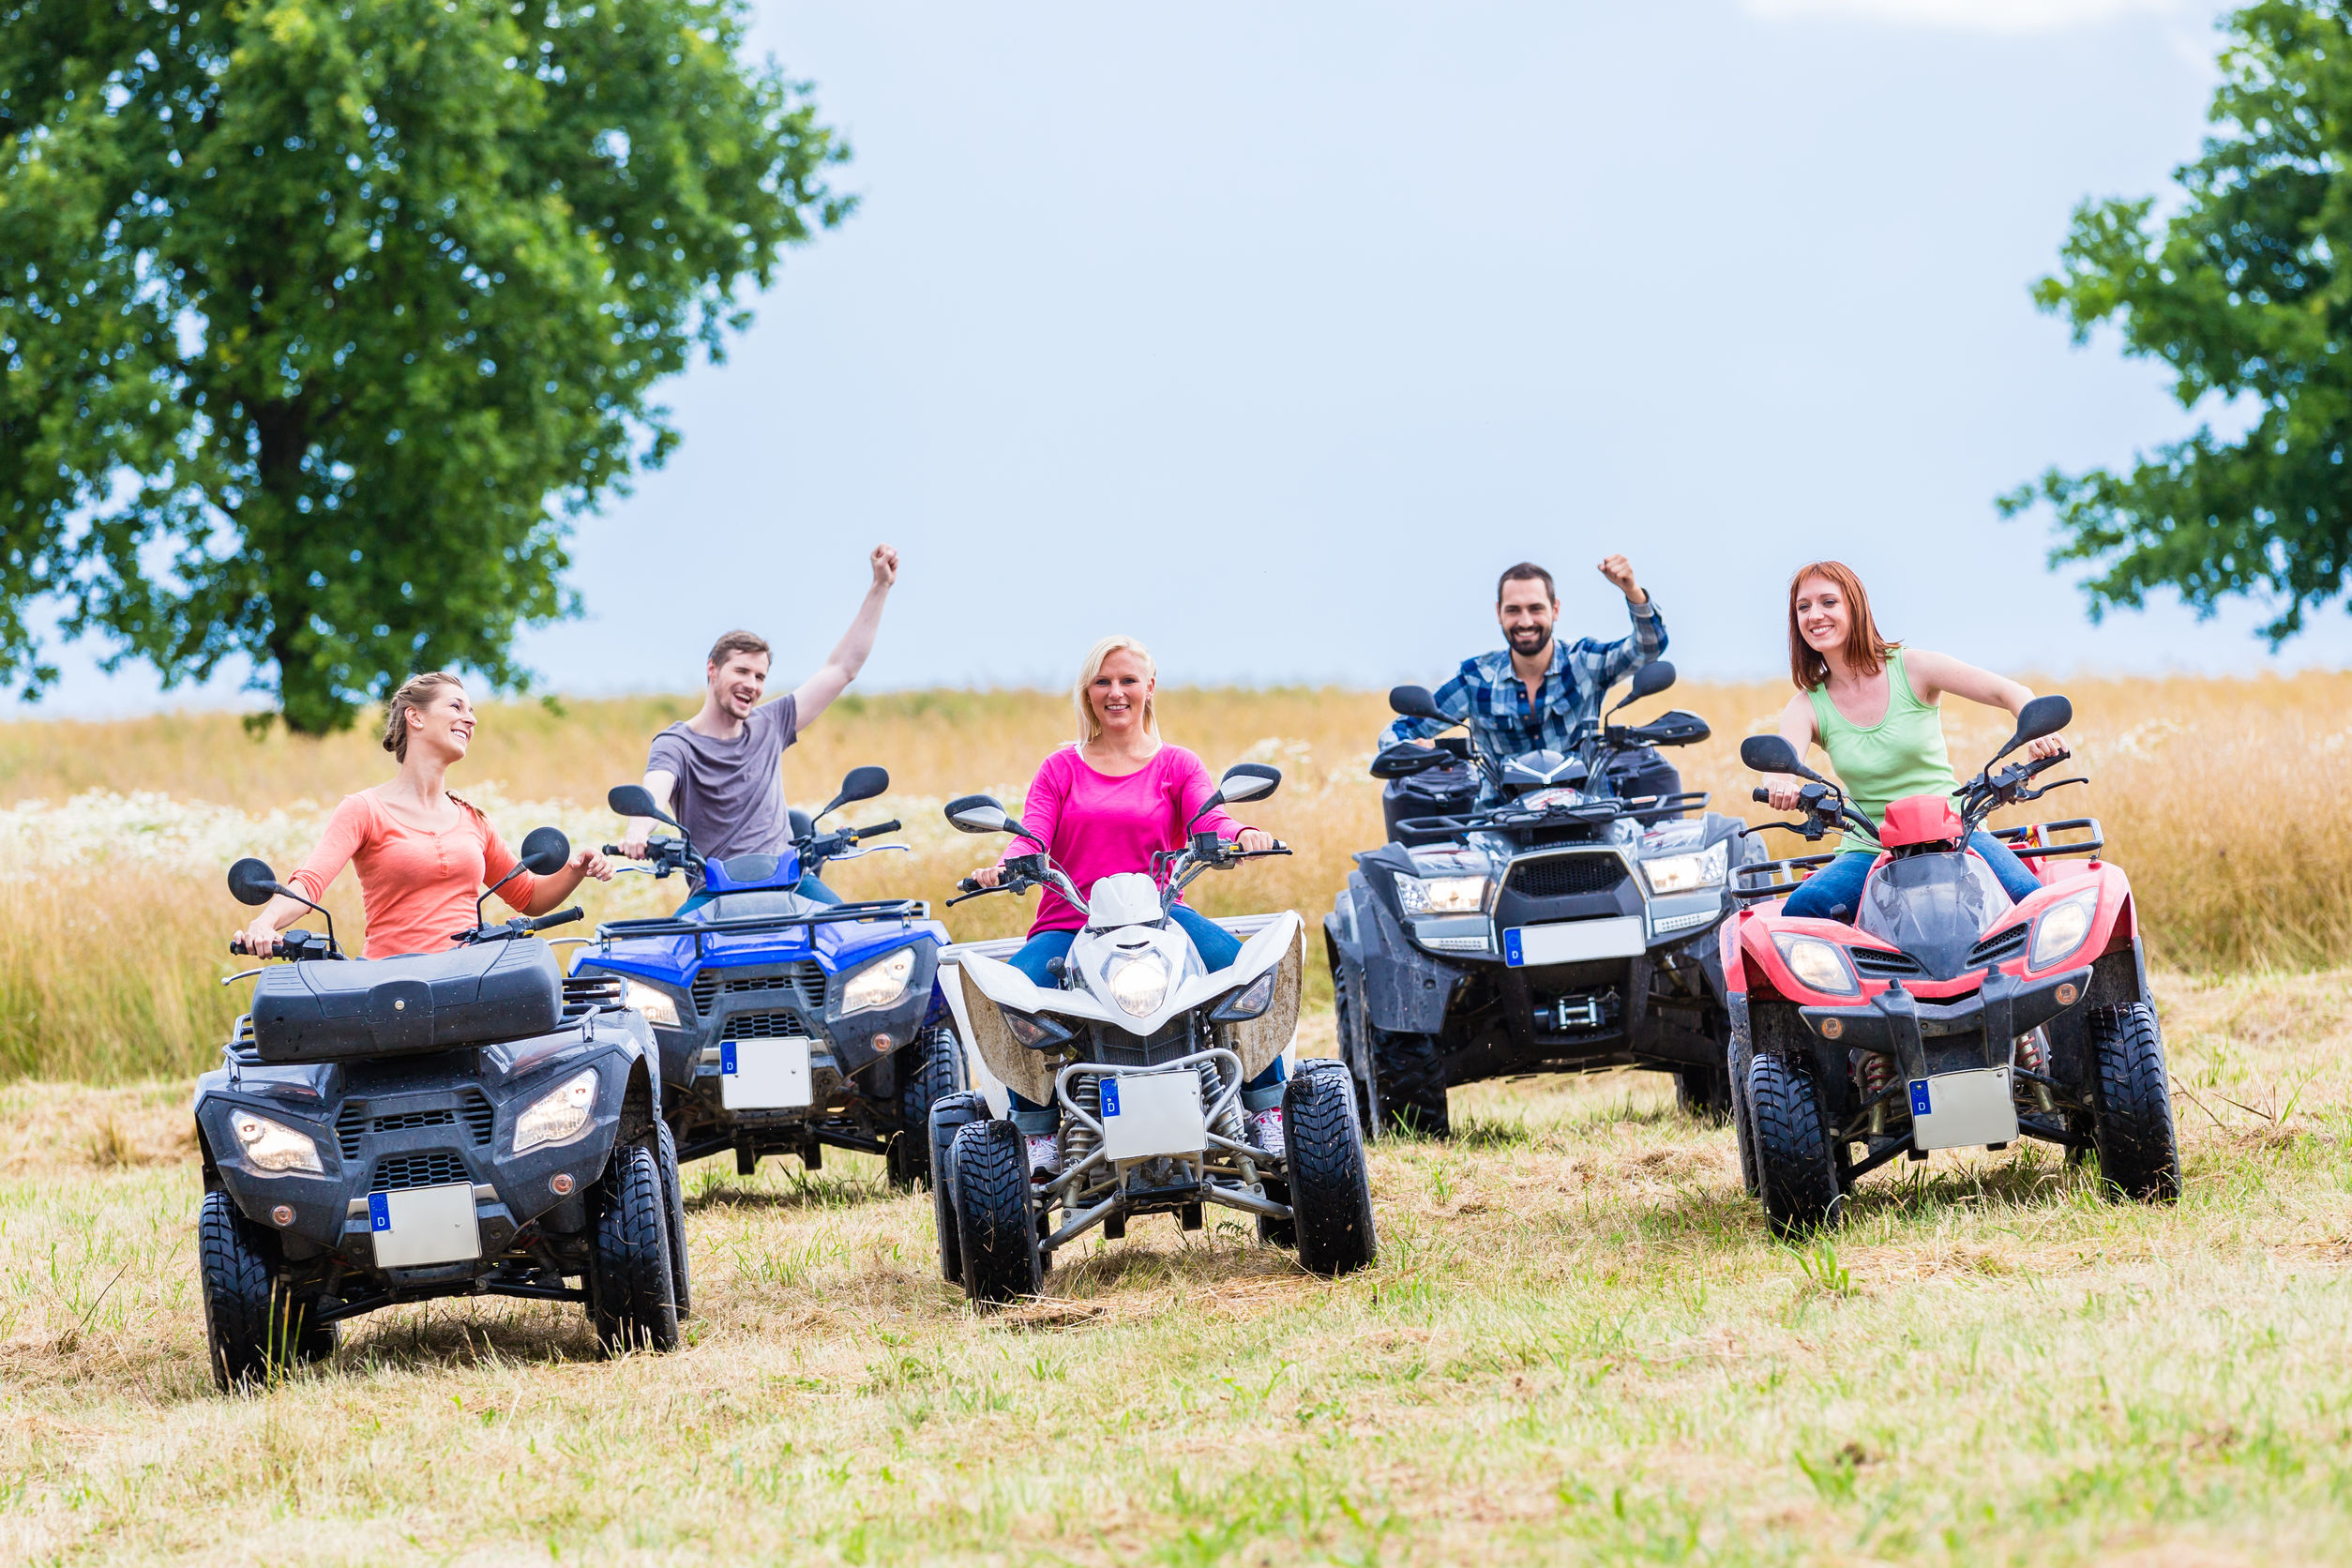 Panama City ATV Insurance